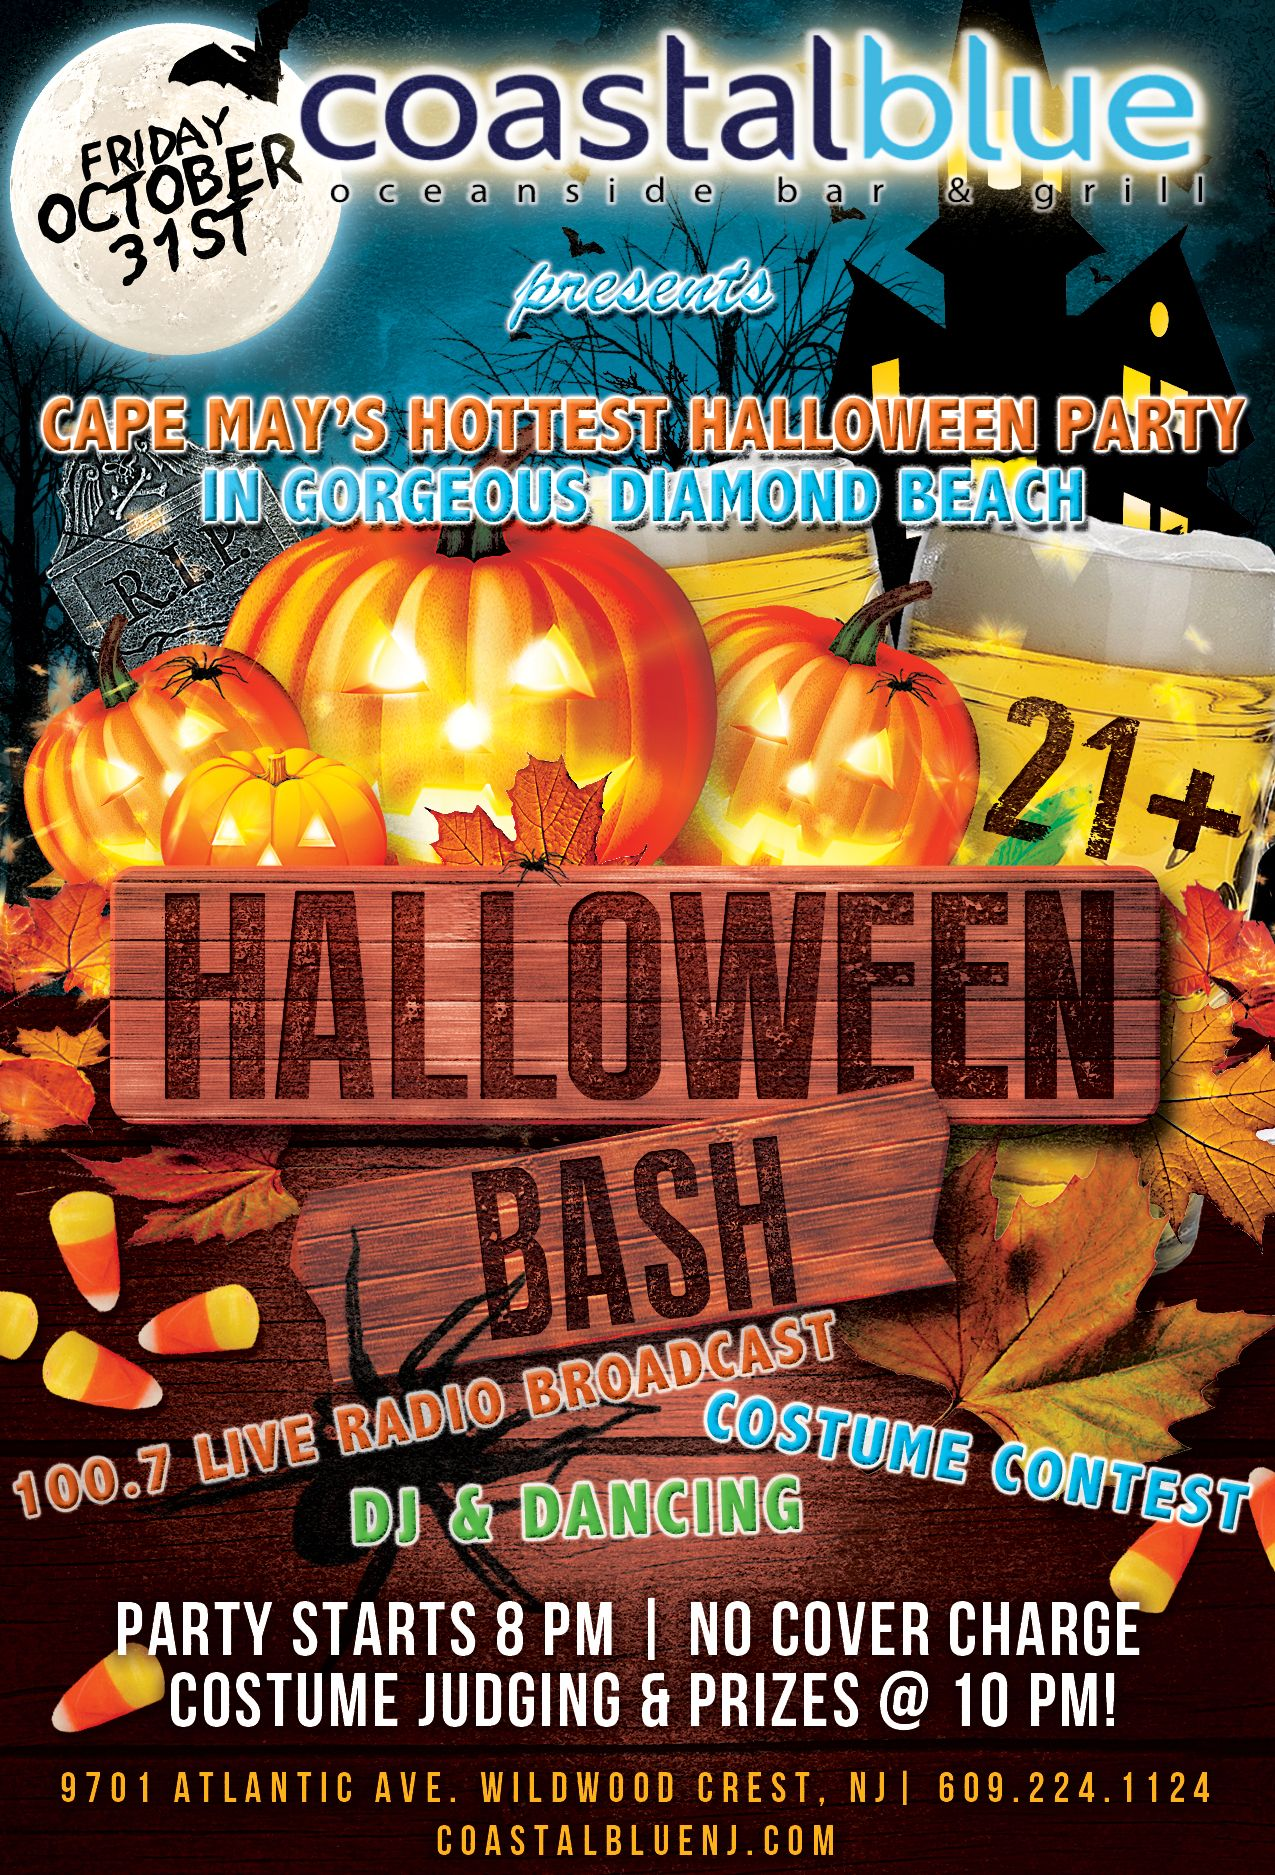 Cape May Halloween.Cape May S Hottest Halloween Party Is Friday October 31st